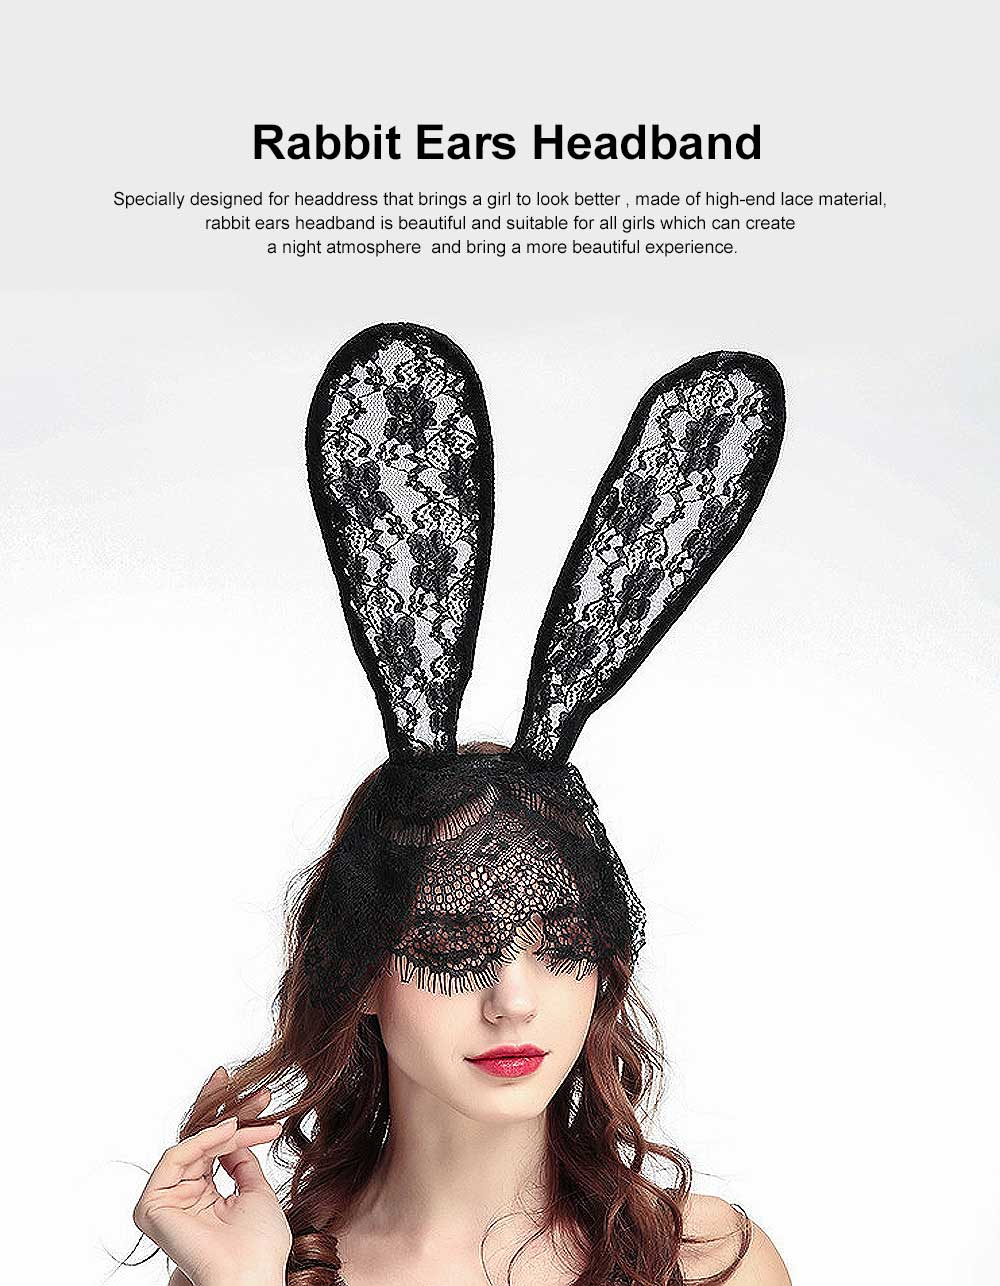 Women Lace Nightclub Party Headwear with Rabbit Ears Design, Headband for Costume Accessory 0